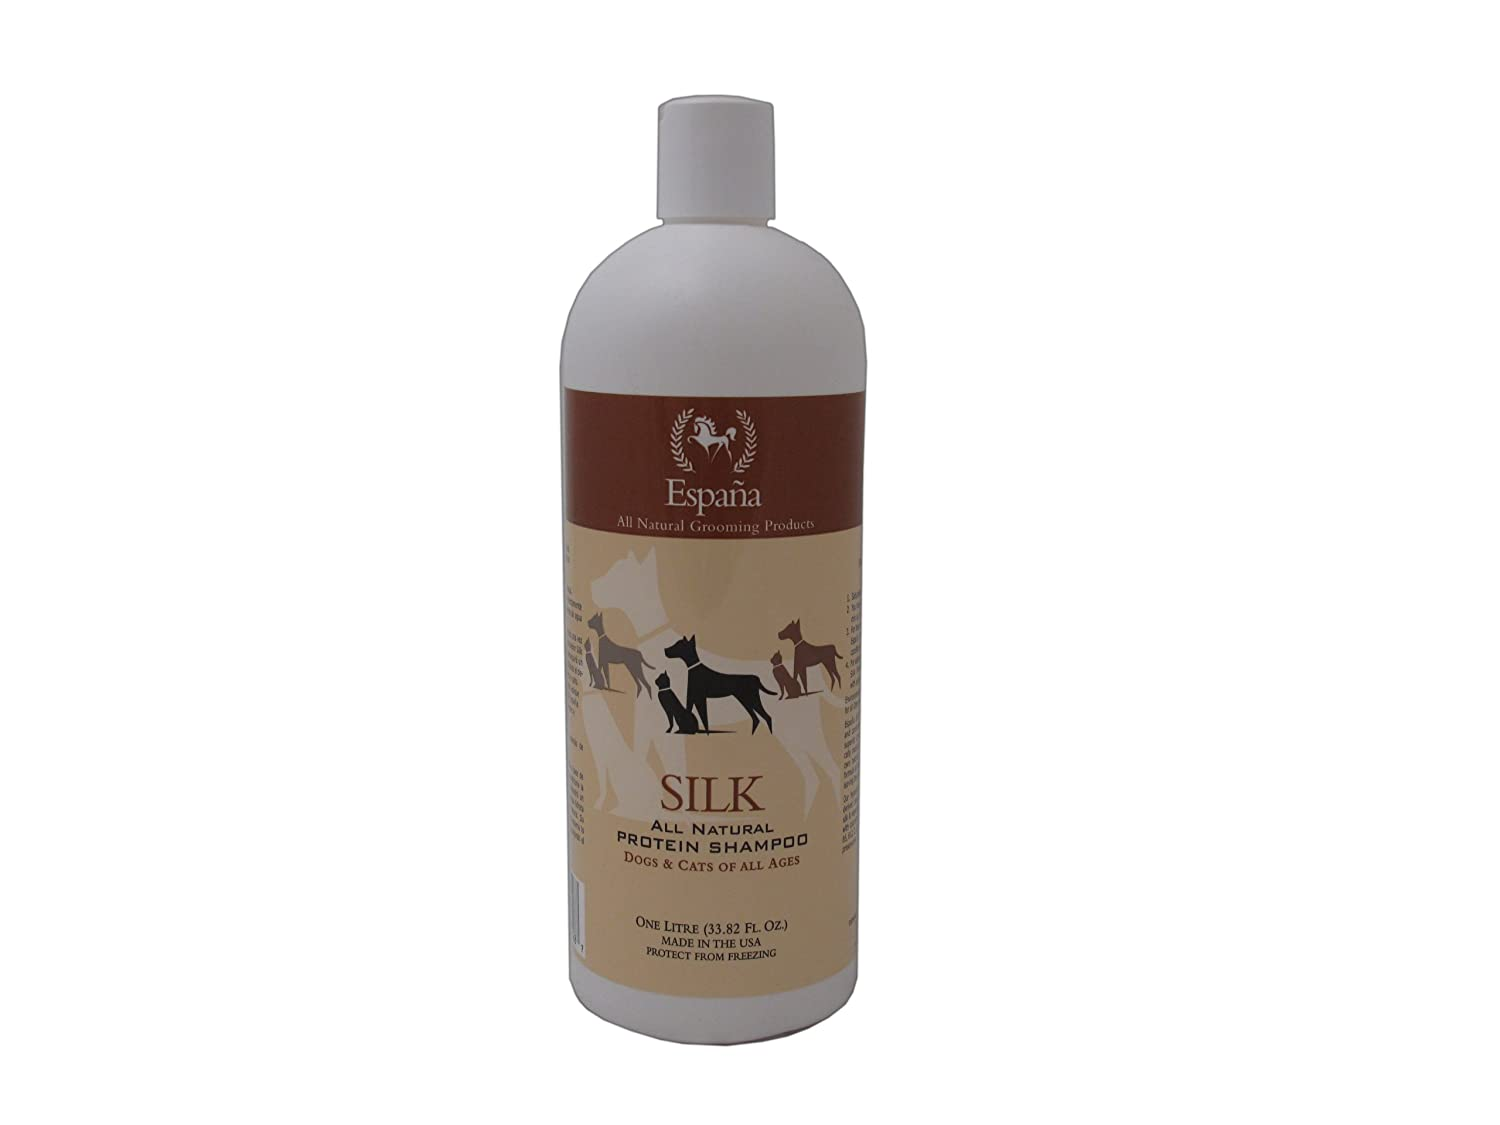 Espana Silk ESP0030DC Specially Formulated Silk Protein Shampoo for Dogs and Cats